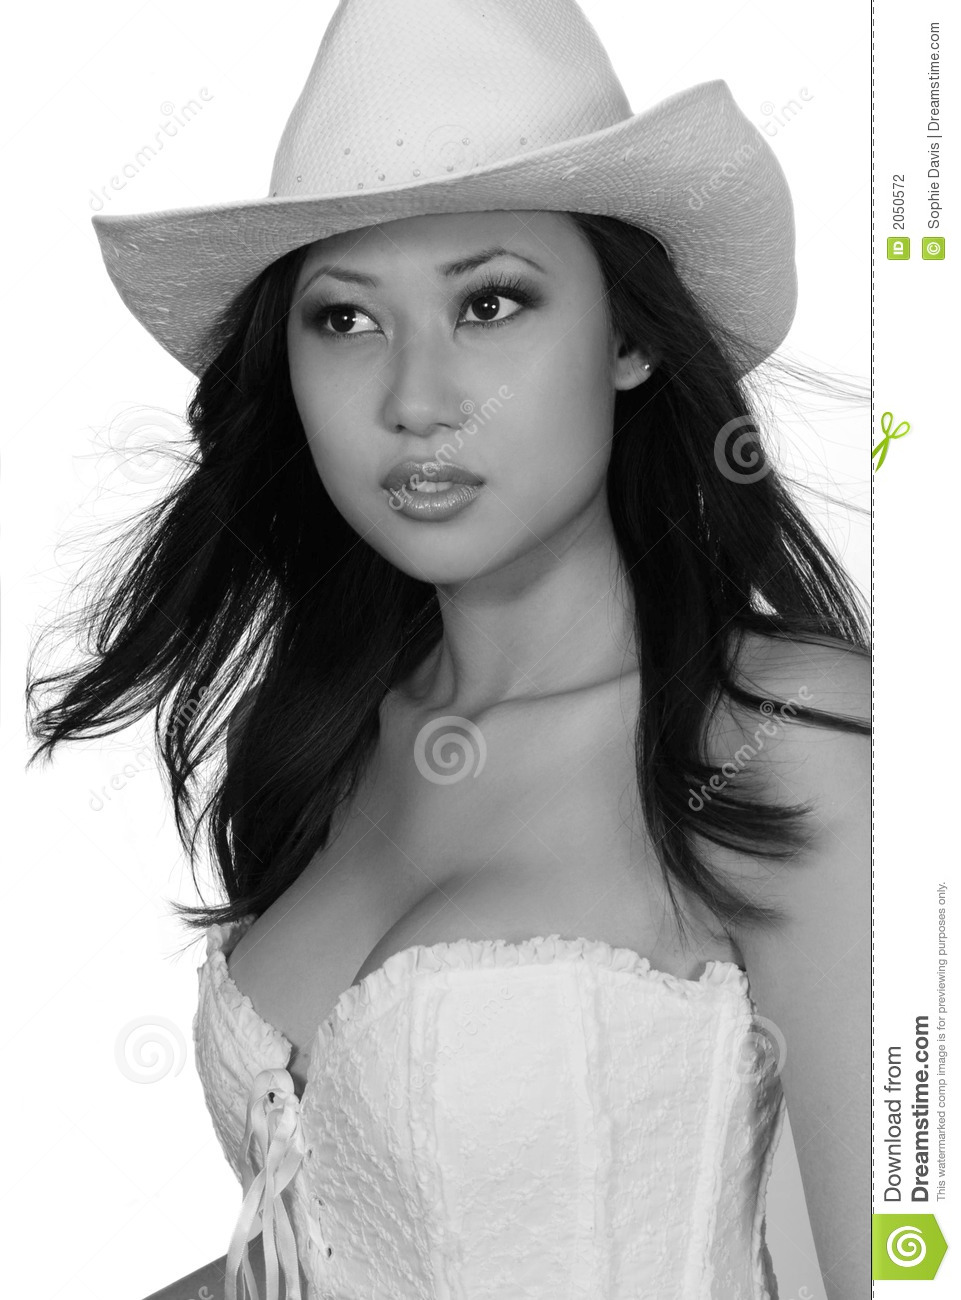 Black and White portrait of a stunning Asian woman wearing a white cowboy  hat and corset. Professional make-up artist. ef1ce5dda1da